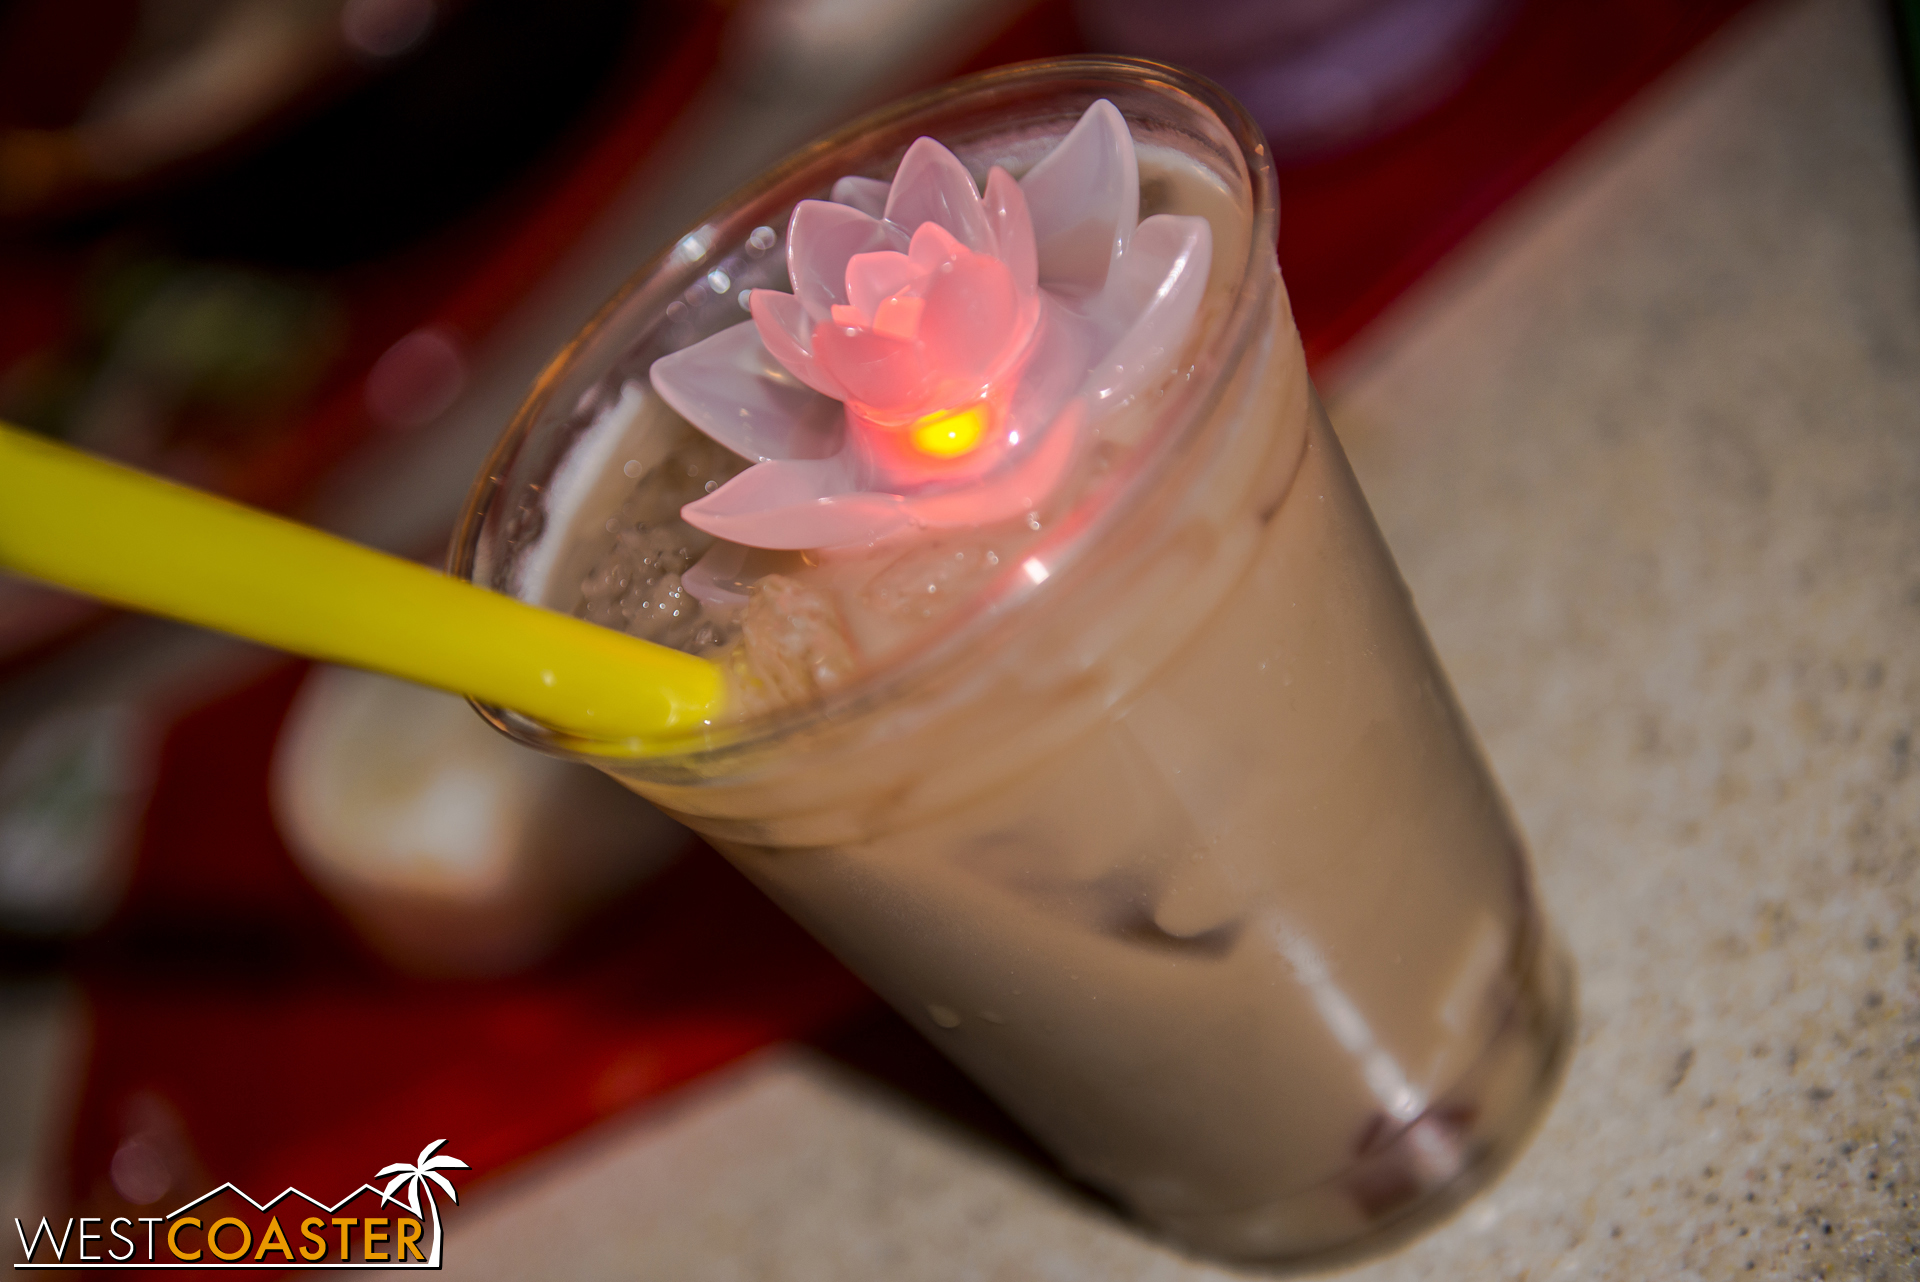 The Almond Milk Iced Tea with Assorted Jellies comes with a nice glow lotus and is available at the Garden Grill.